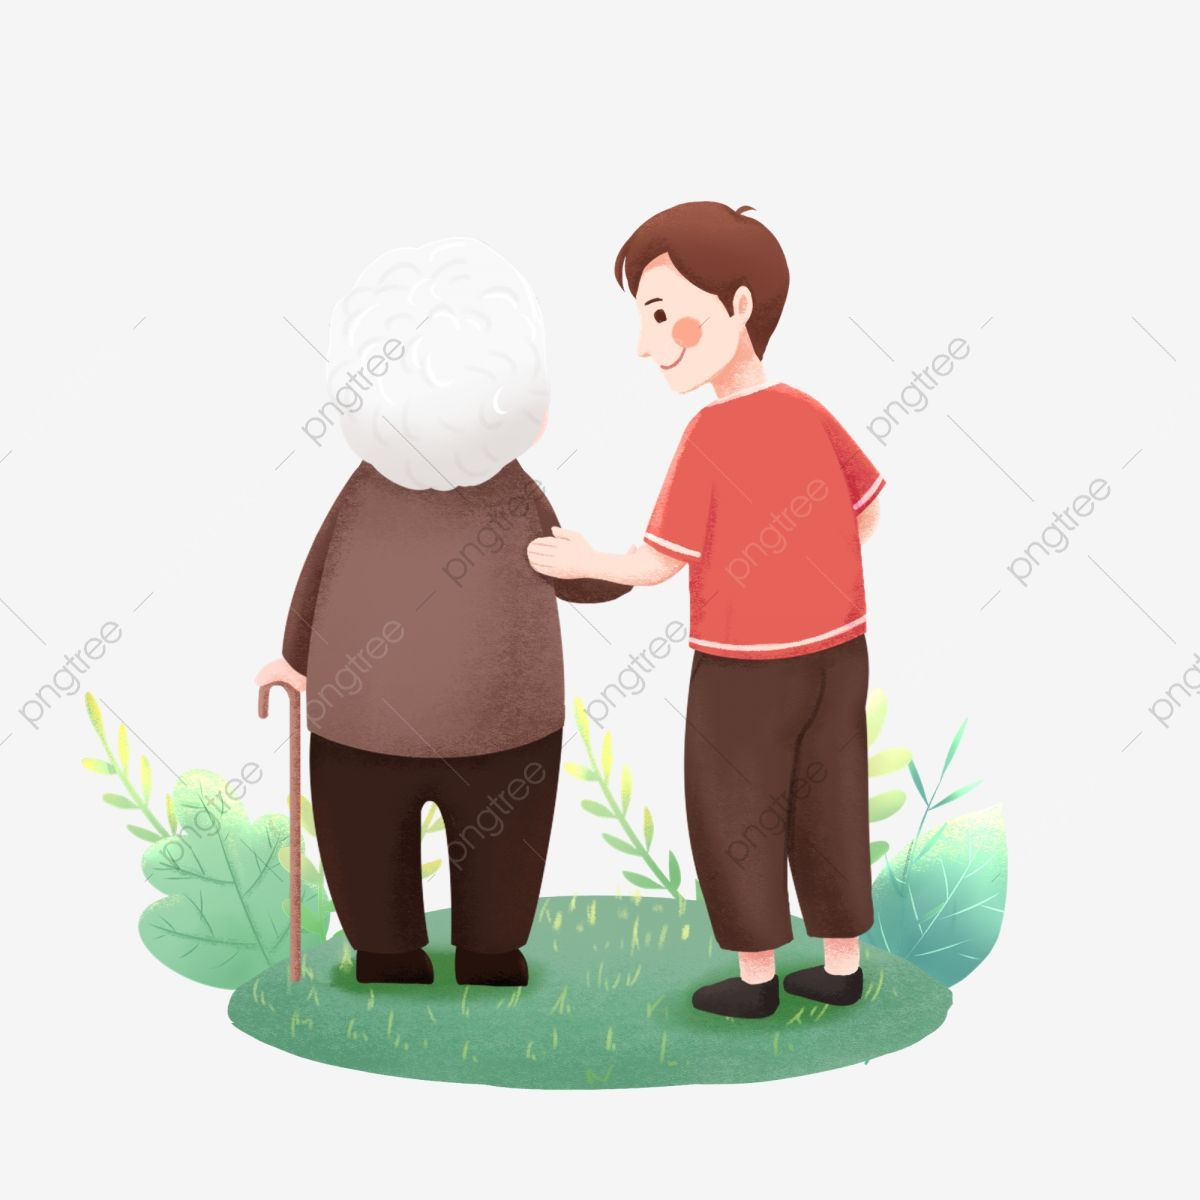 Filial Piety Images, Stock Photos & Vectors   Shutterstock